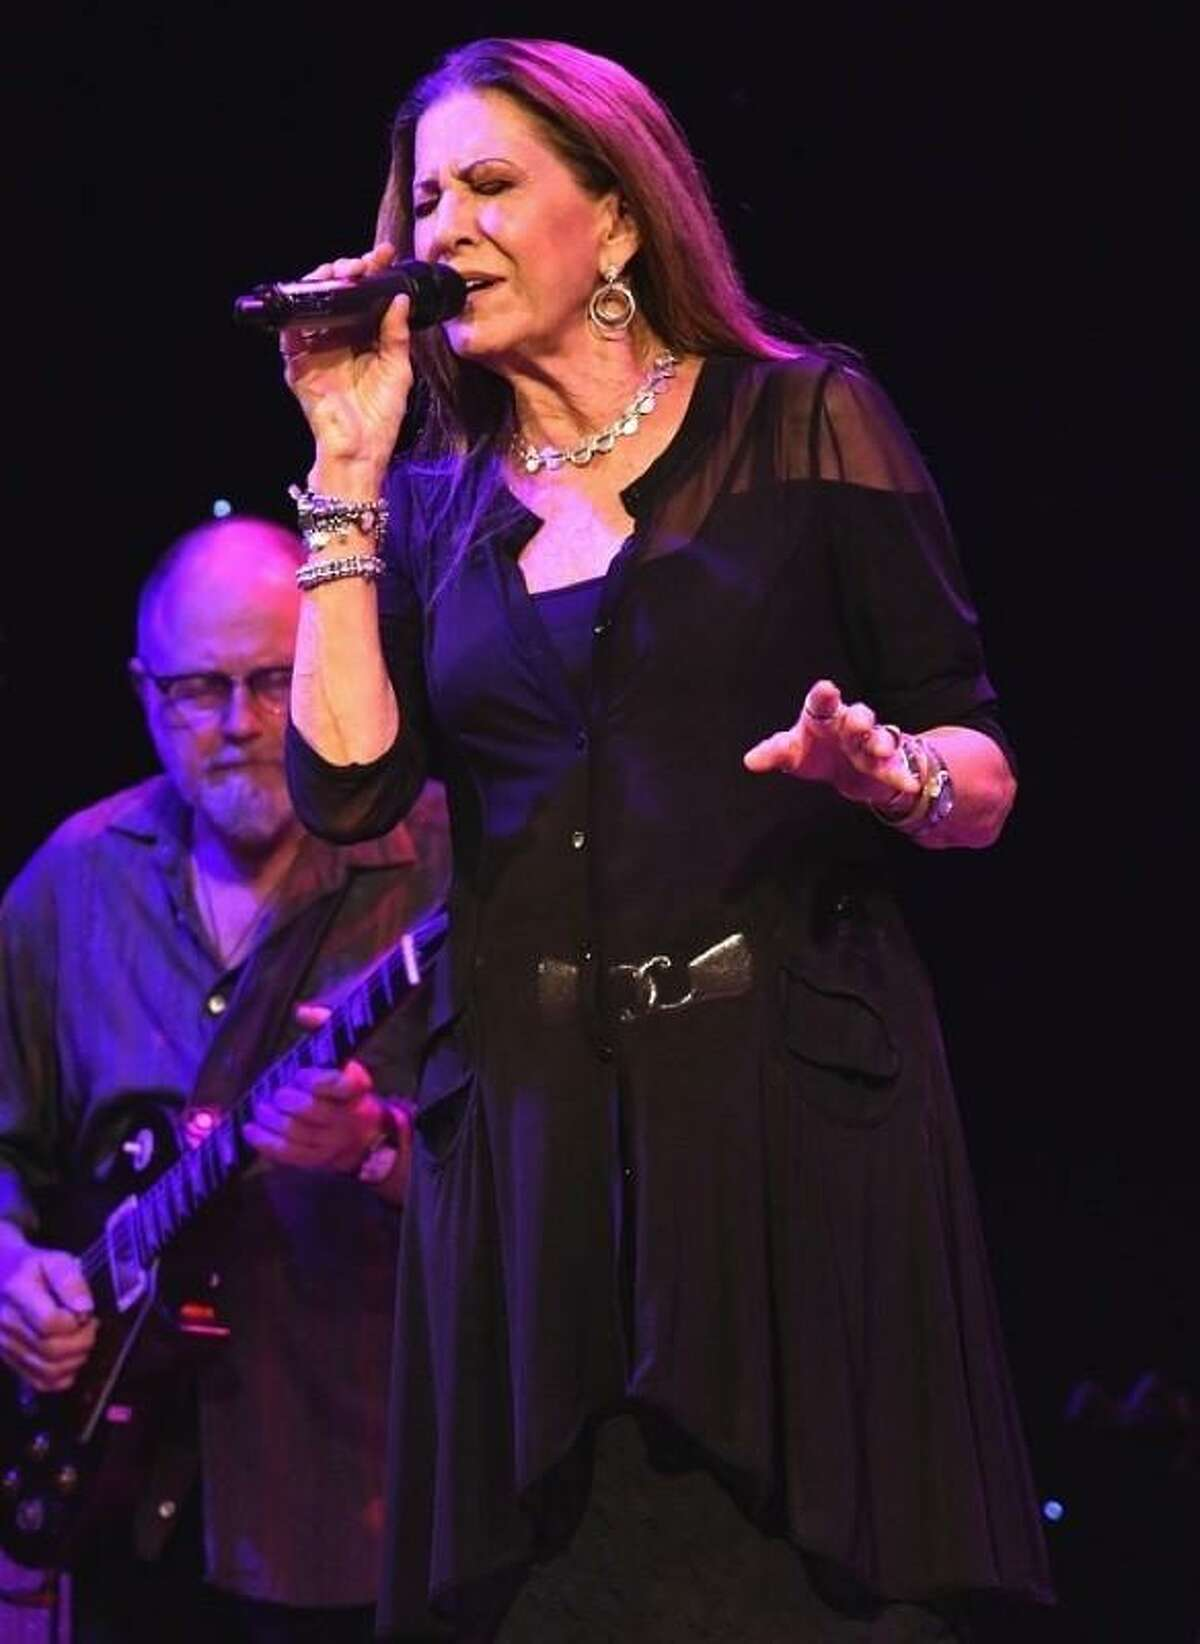 One of music's most enduring voices and composers Rita Coolidge is shown singing with strong passion during her top shelf concert performance at the Infinity Music Hall in Hartford Sept. 13. Her show included music and stories from her near 50 year successful career. Rita is currently on tour in support of her latest album